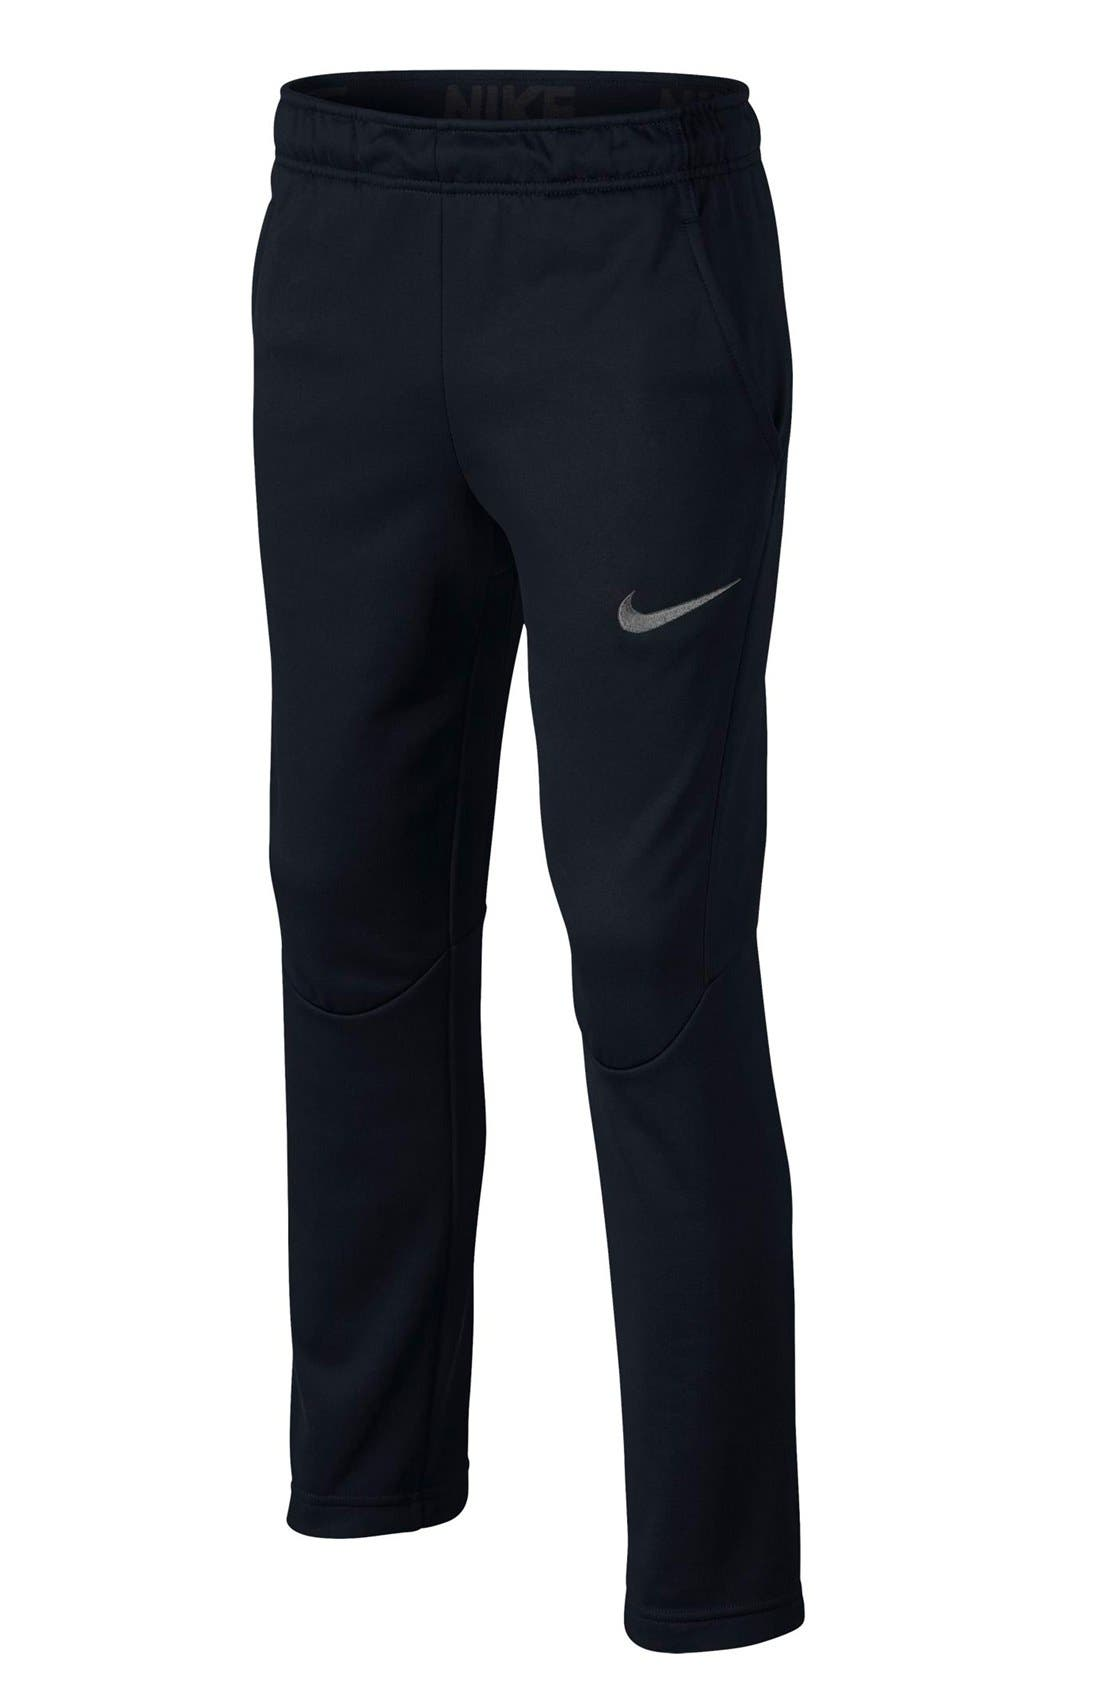 Alternate Image 1 Selected - Nike Therma-FIT Training Pants (Little Boys & Big Boys) (Regular Retail Price: $40.00)